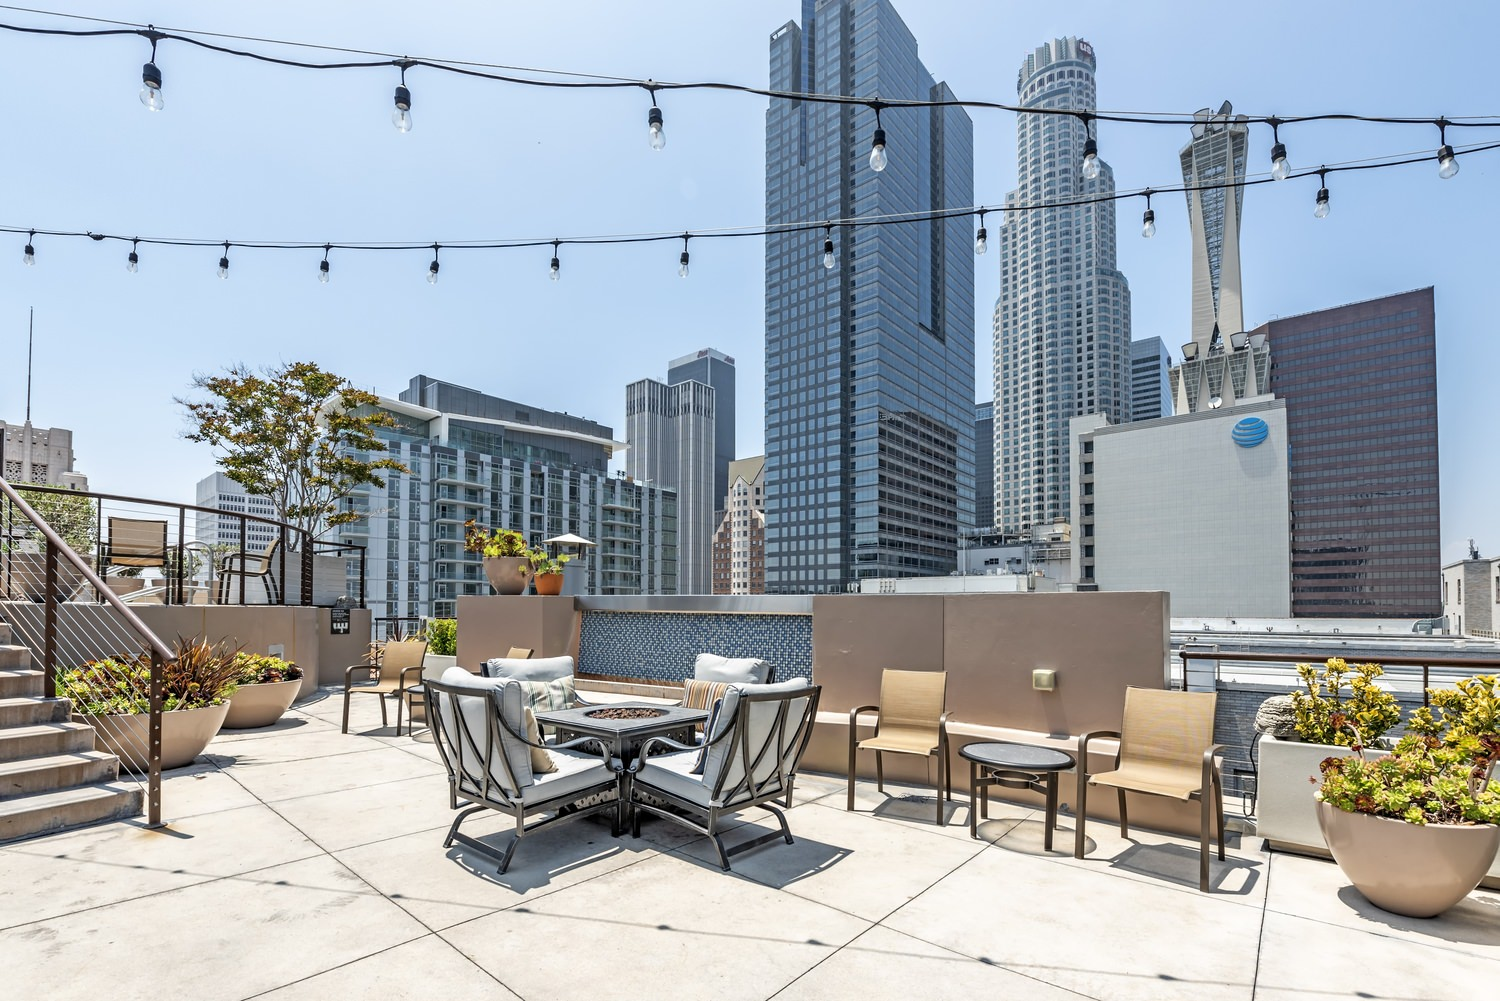 A rooftop patio that has tables and chairs as well as a fire pit, there are also planters with flowers in them.